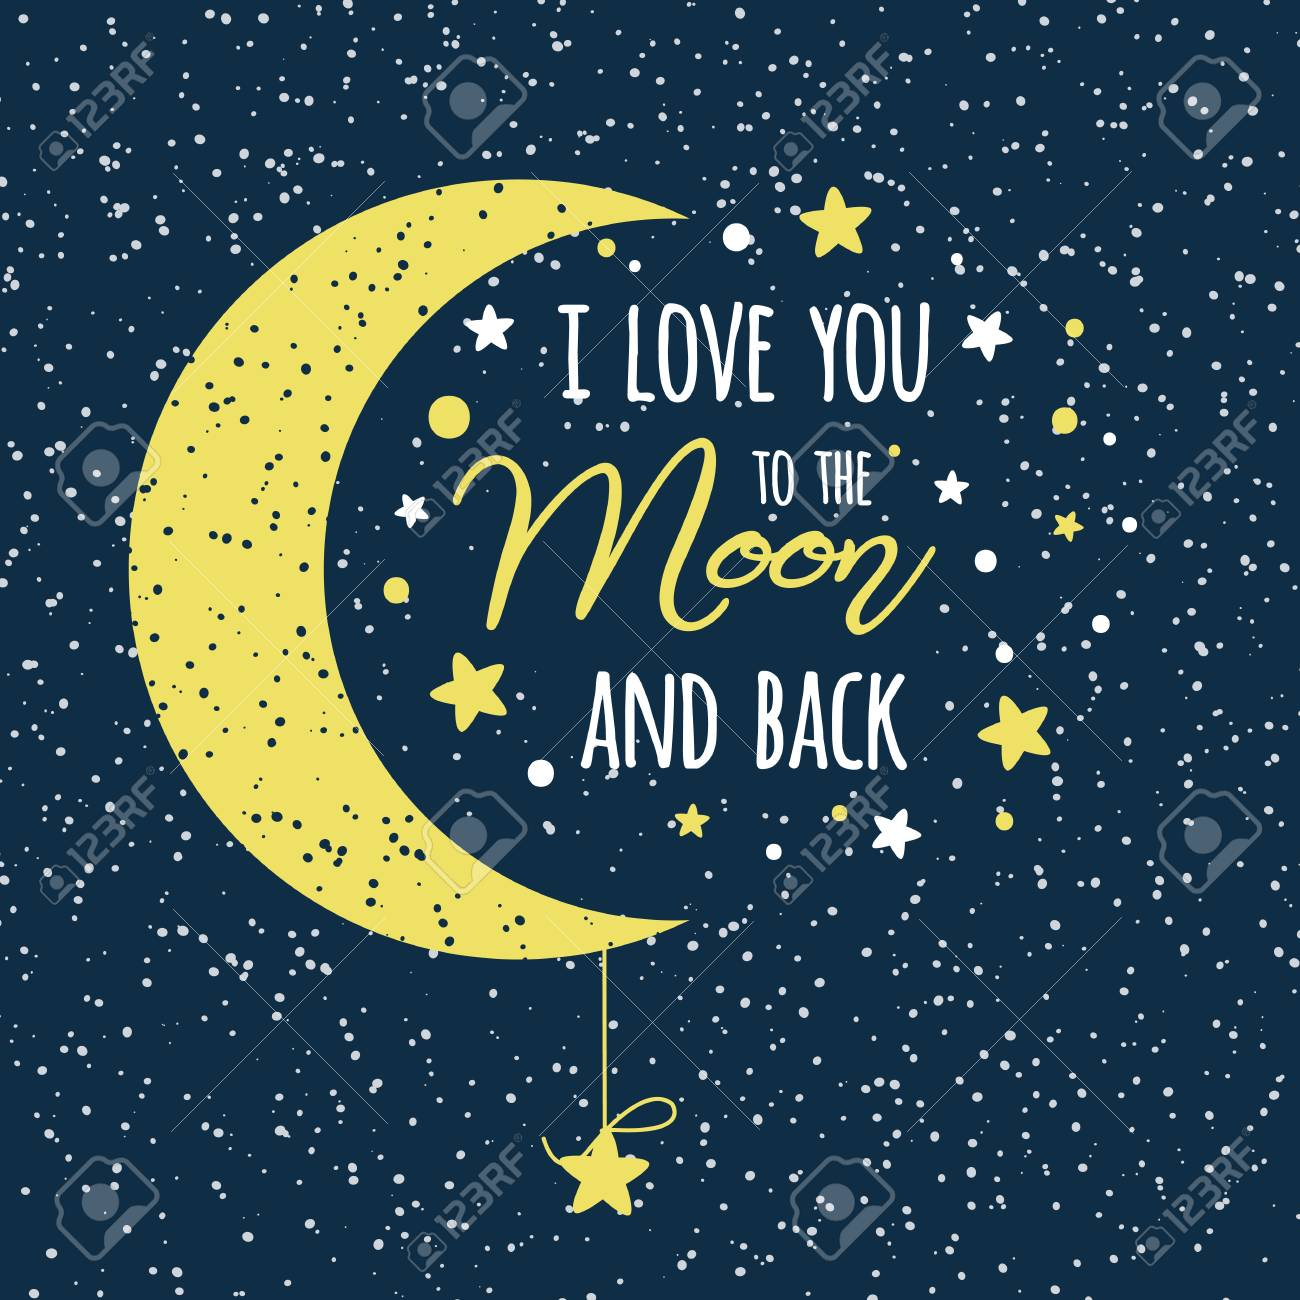 I love you to the moon and back. St Valentines day inspirational quote yellow moon sky full of stars - 116736868